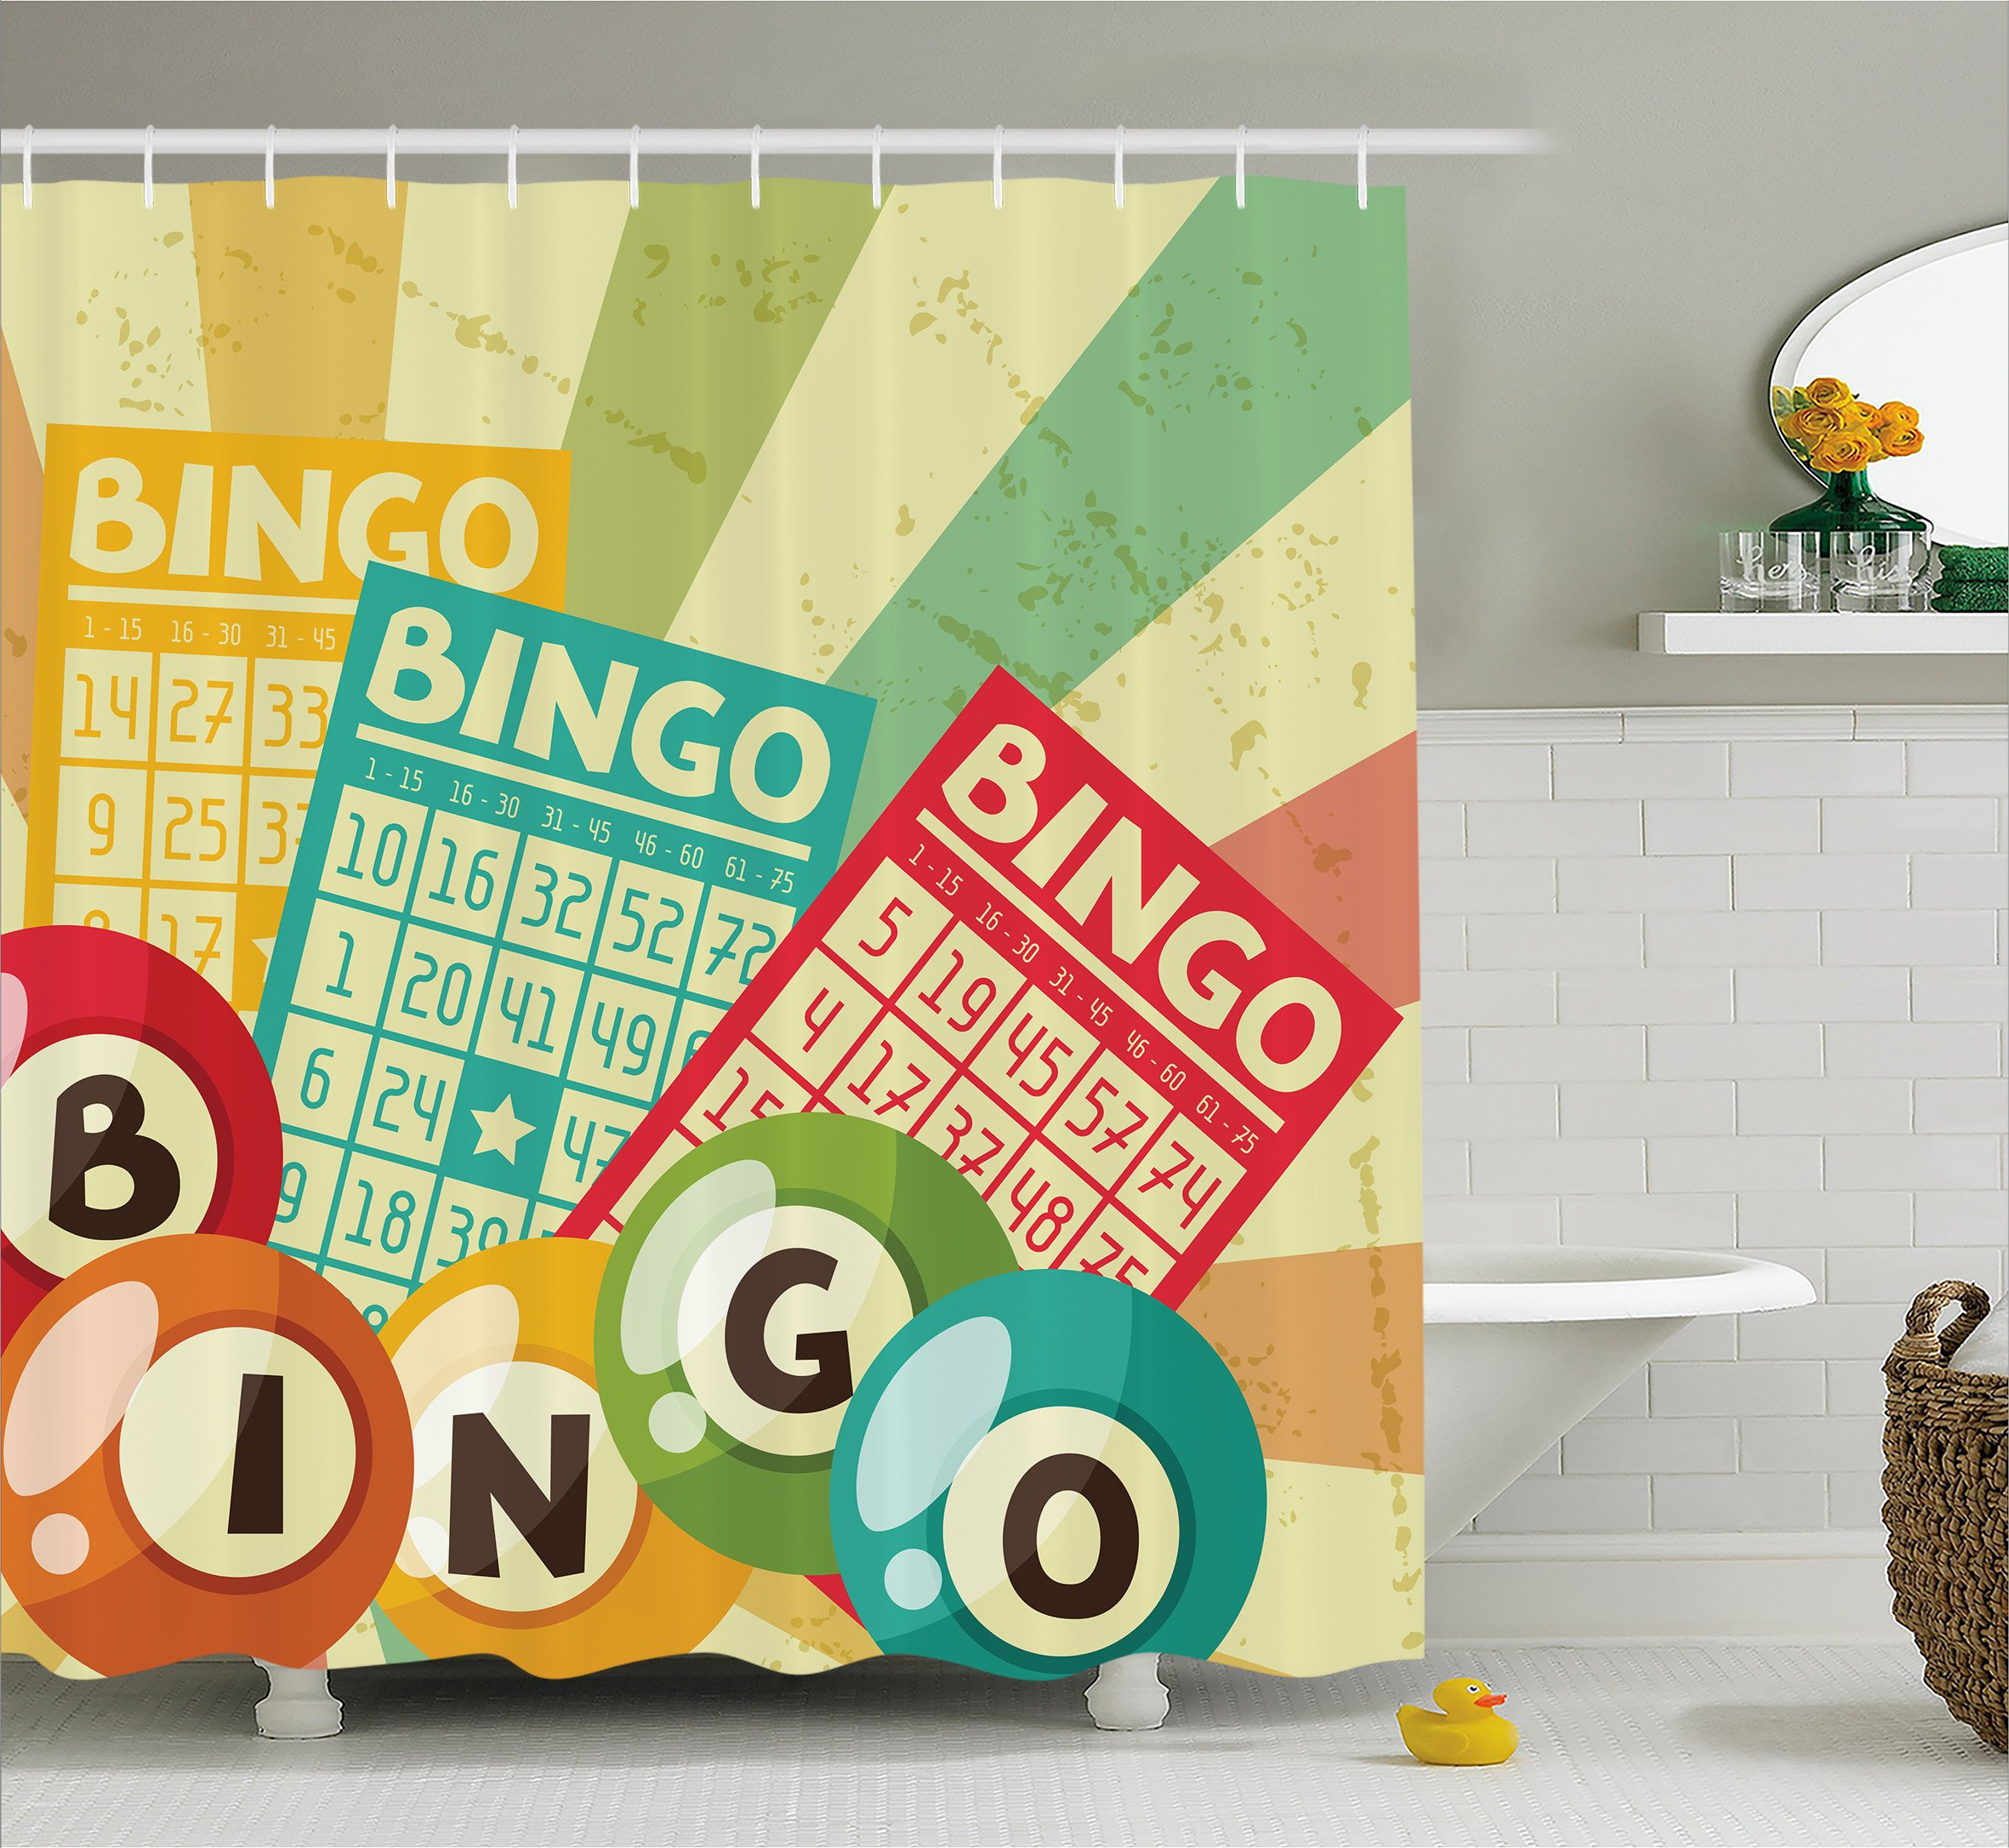 Ambesonne Vintage Decor Shower Curtain, Bingo Game with Ball and Cards Pop Art Stylized Lottery Hobby Celebration Theme, Fabric Bathroom Decor Set with Hooks, 75 inches Long, Multi by Ambesonne